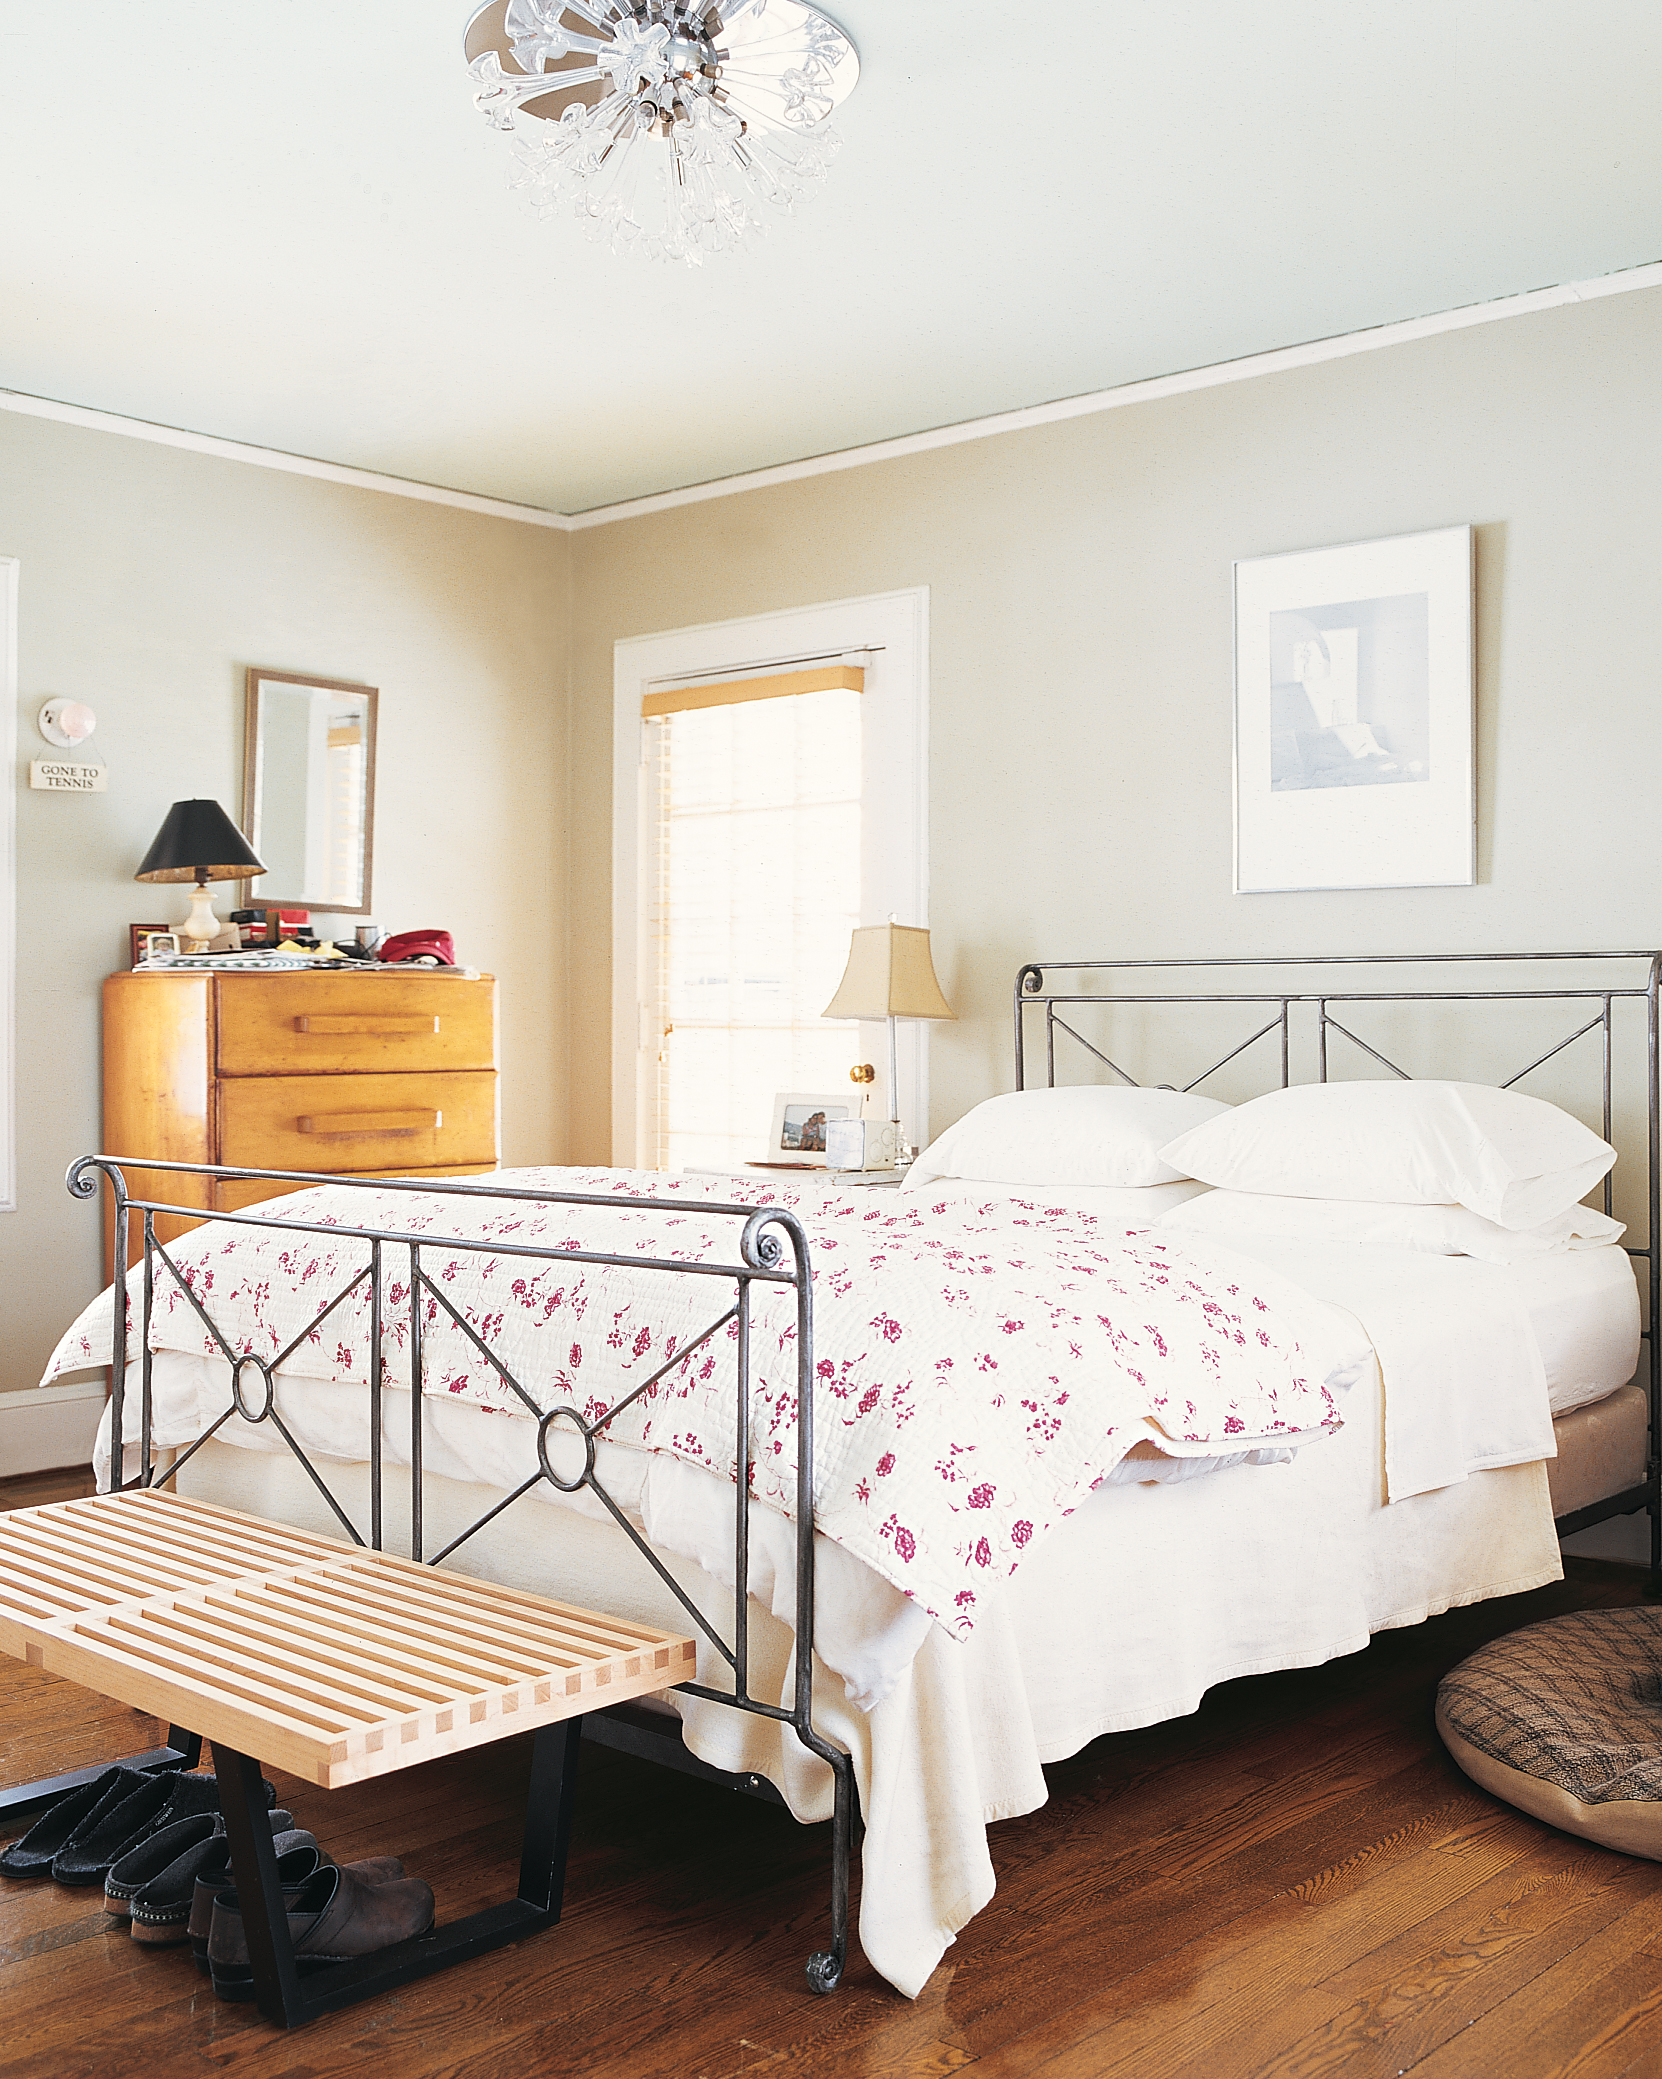 Bright Ideas for a Budget-Friendly Master Bedroom Makeover   Martha ...